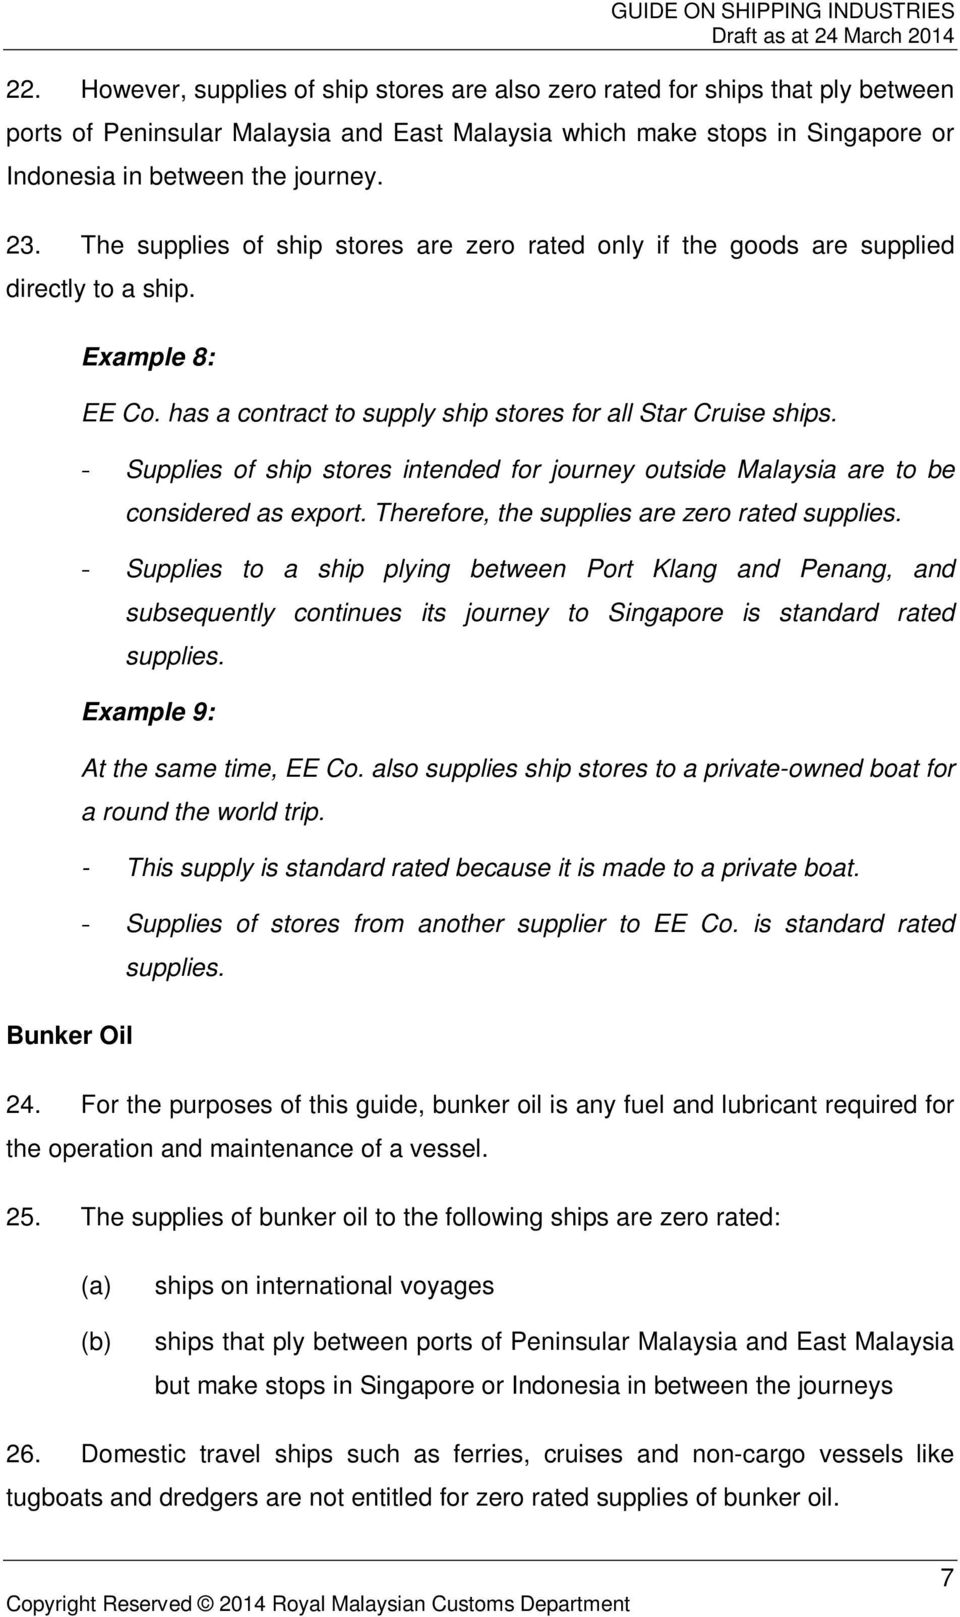 - Supplies of ship stores intended for journey outside Malaysia are to be considered as export. Therefore, the supplies are zero rated supplies.